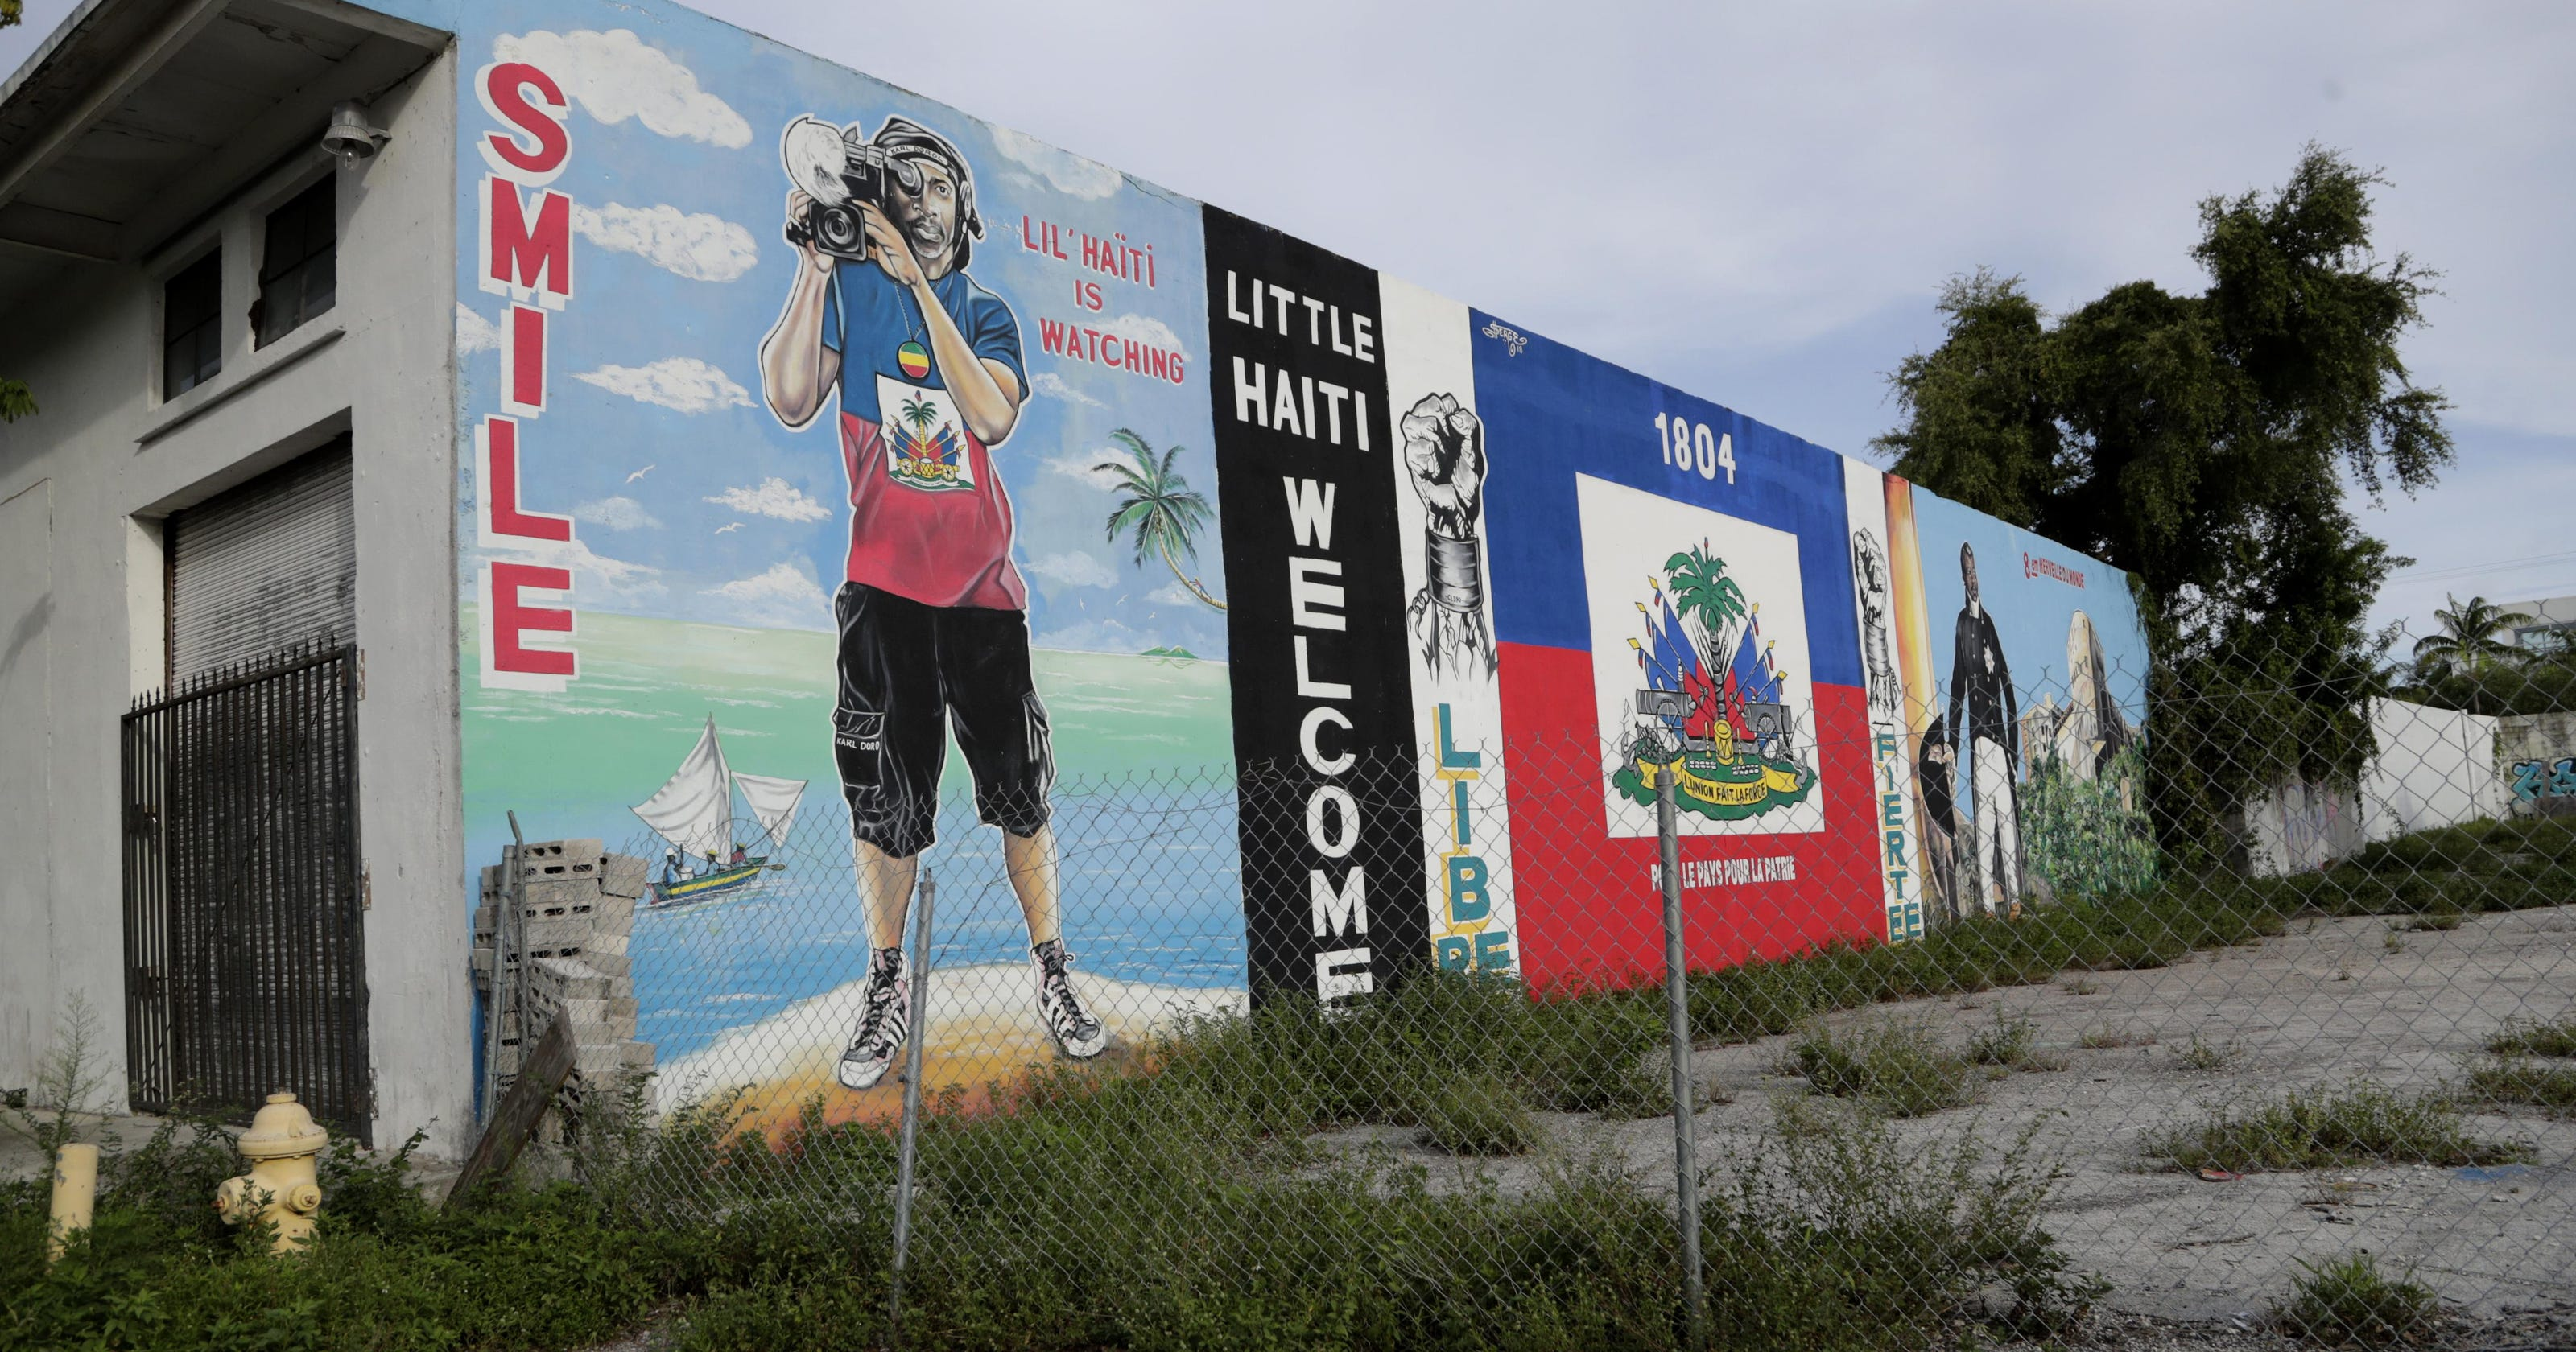 Little Haiti, Corn Pop, Capote and Lee: News from around our 50 states